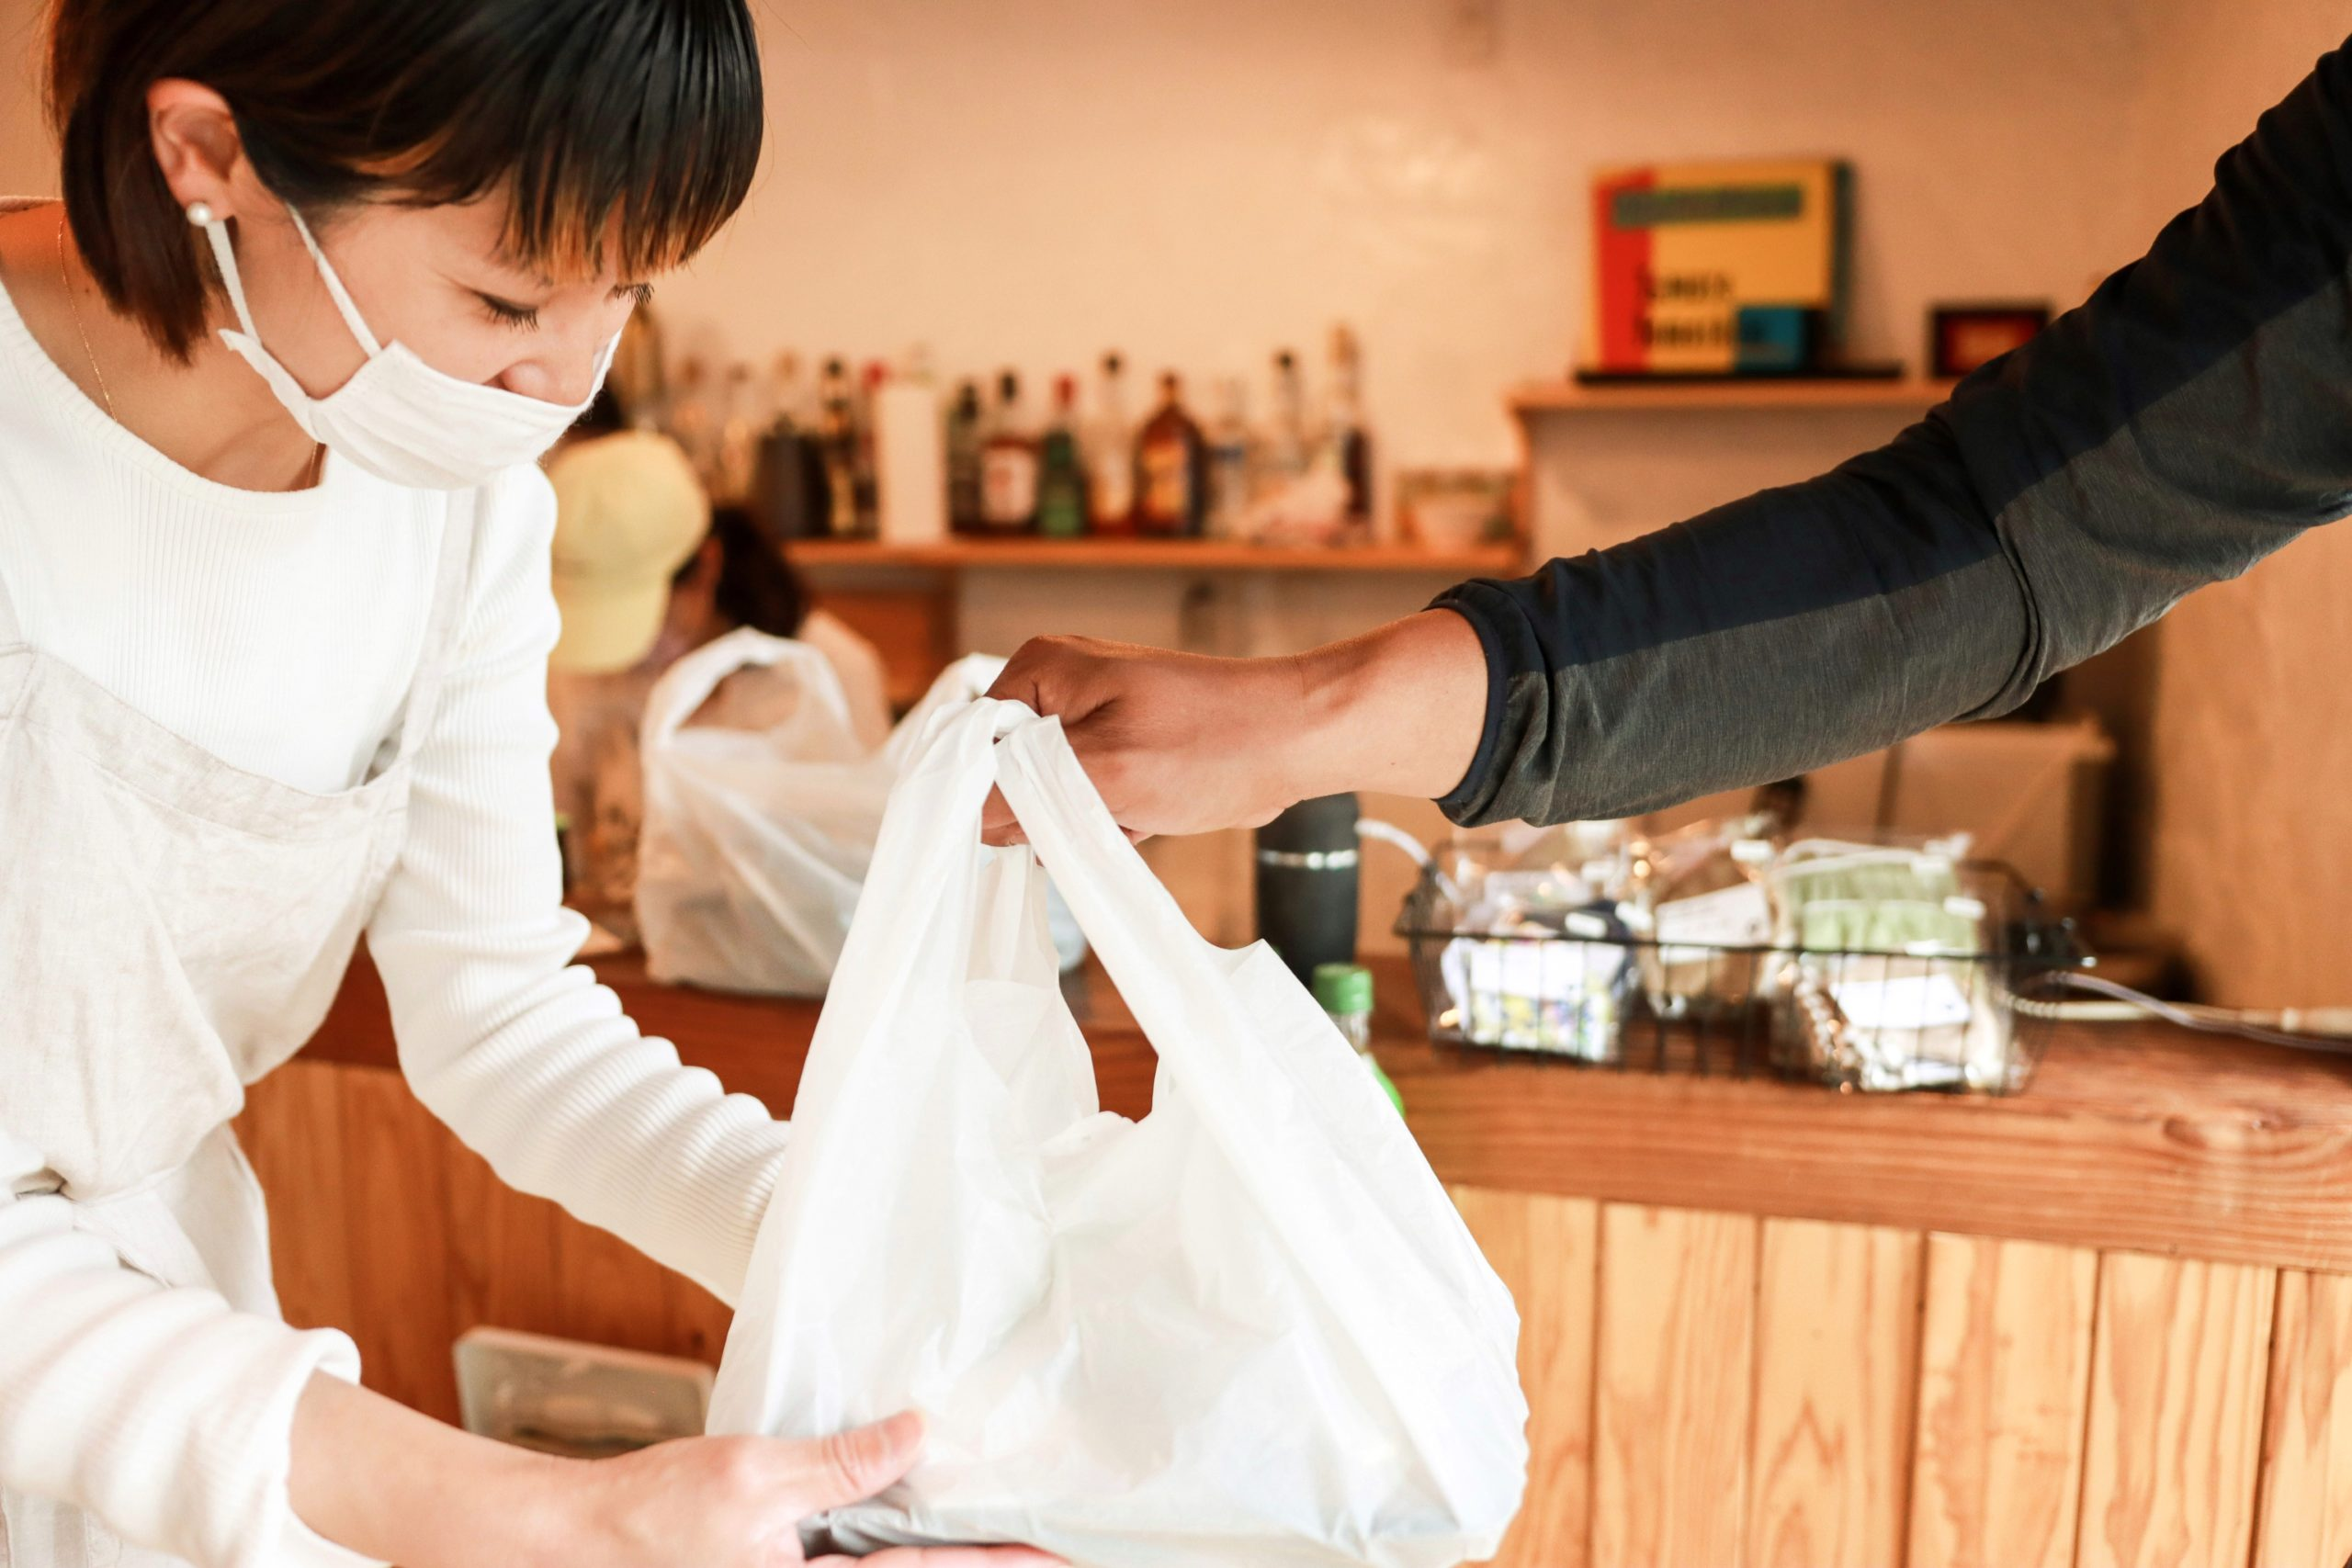 A man receiving his takeout order from a Japanese restaurant   Japanese food in Clarksburg